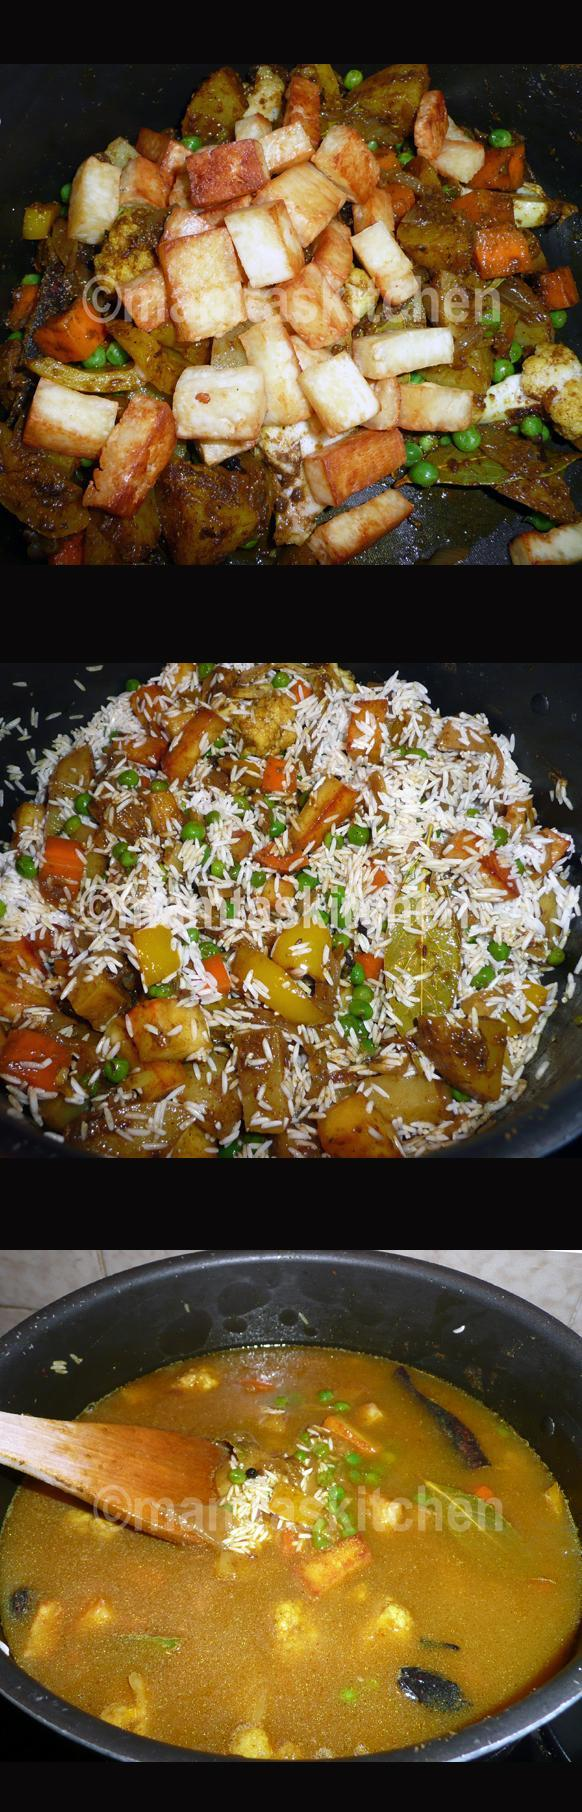 Vegetable Biryani Rice1, With Paneer Cheese